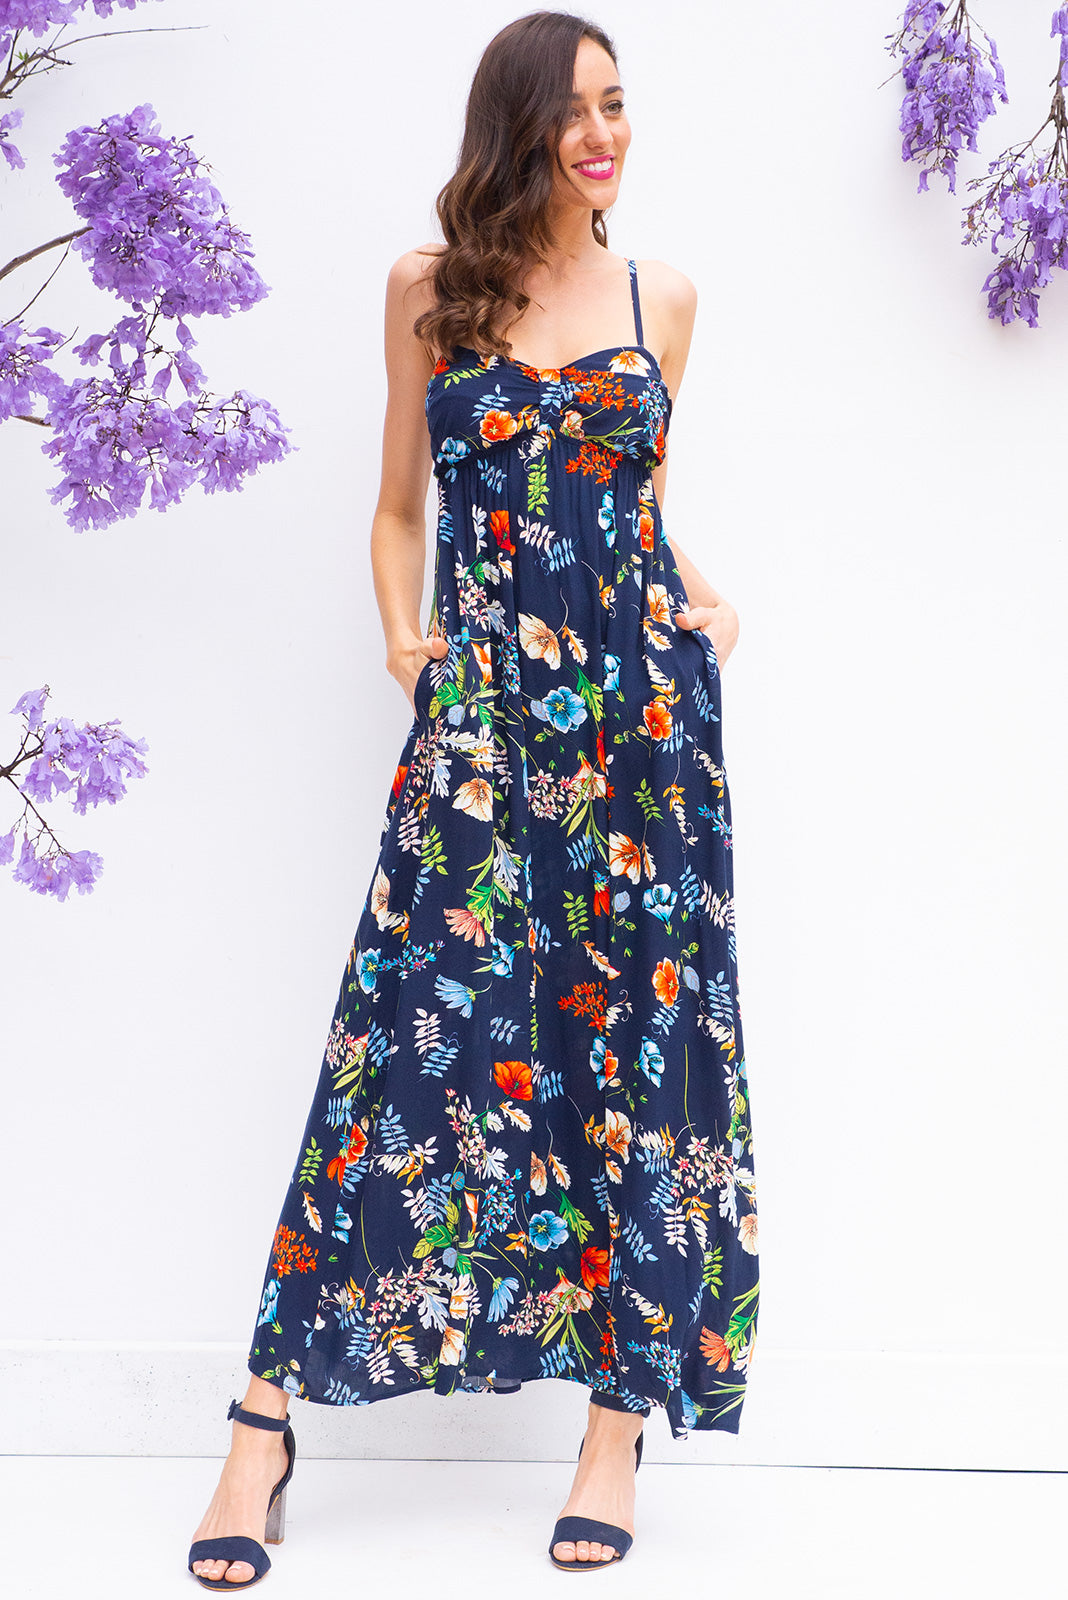 Emmy Clara Navy Maxi Dress features a flattering empire line with thin shoulder straps and side pockets in a bright navy floral print on woven 100% rayon